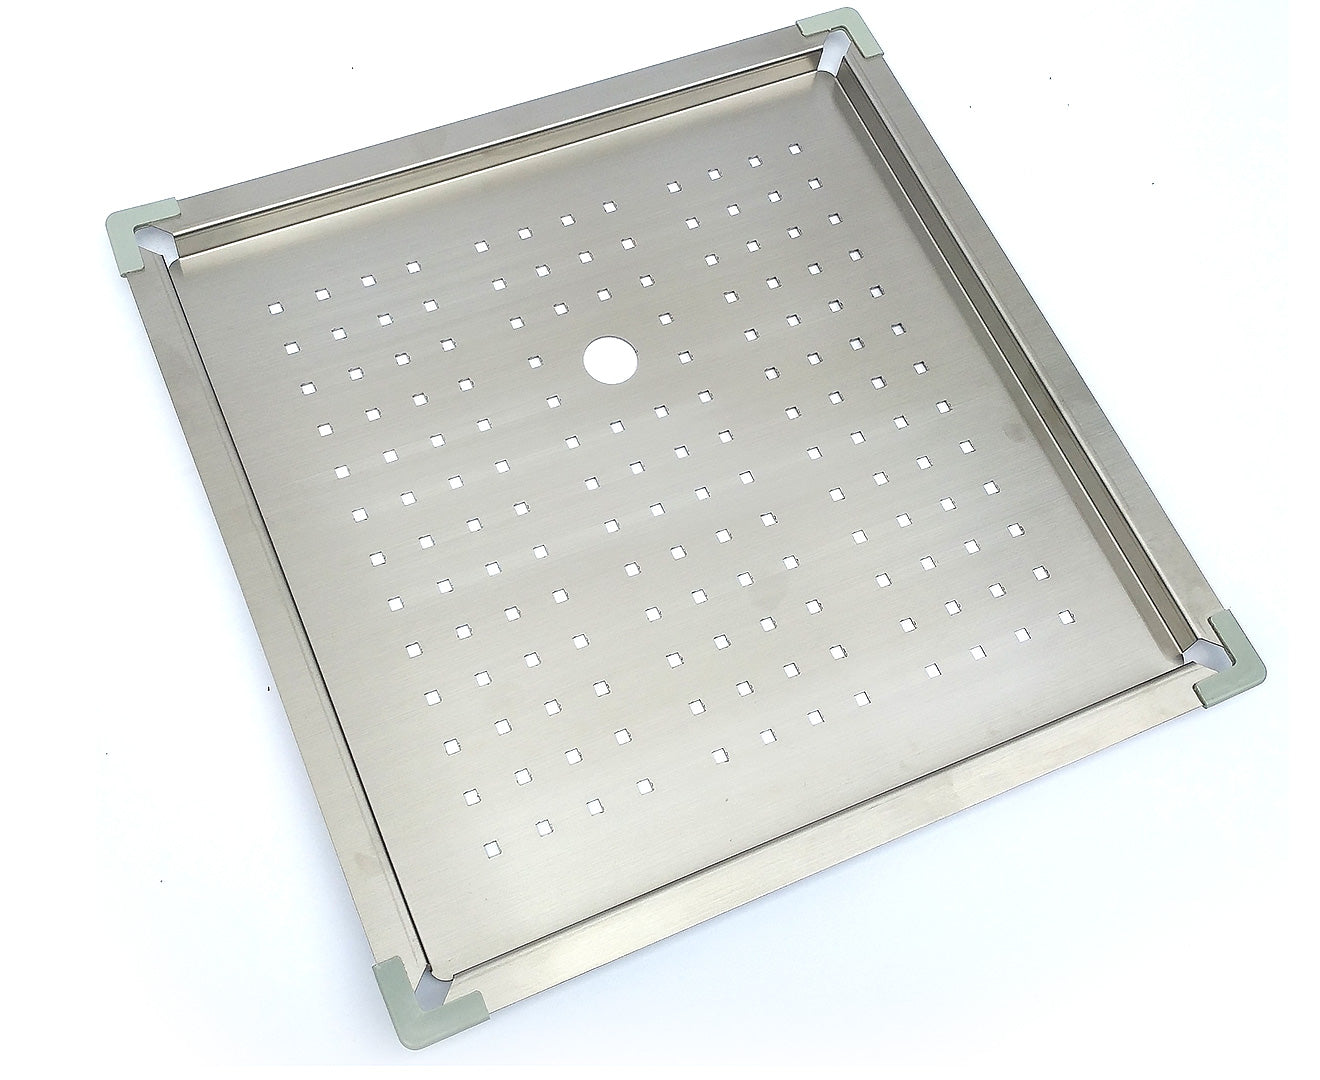 Stainless Steel Sink Colander 430 x 430mm